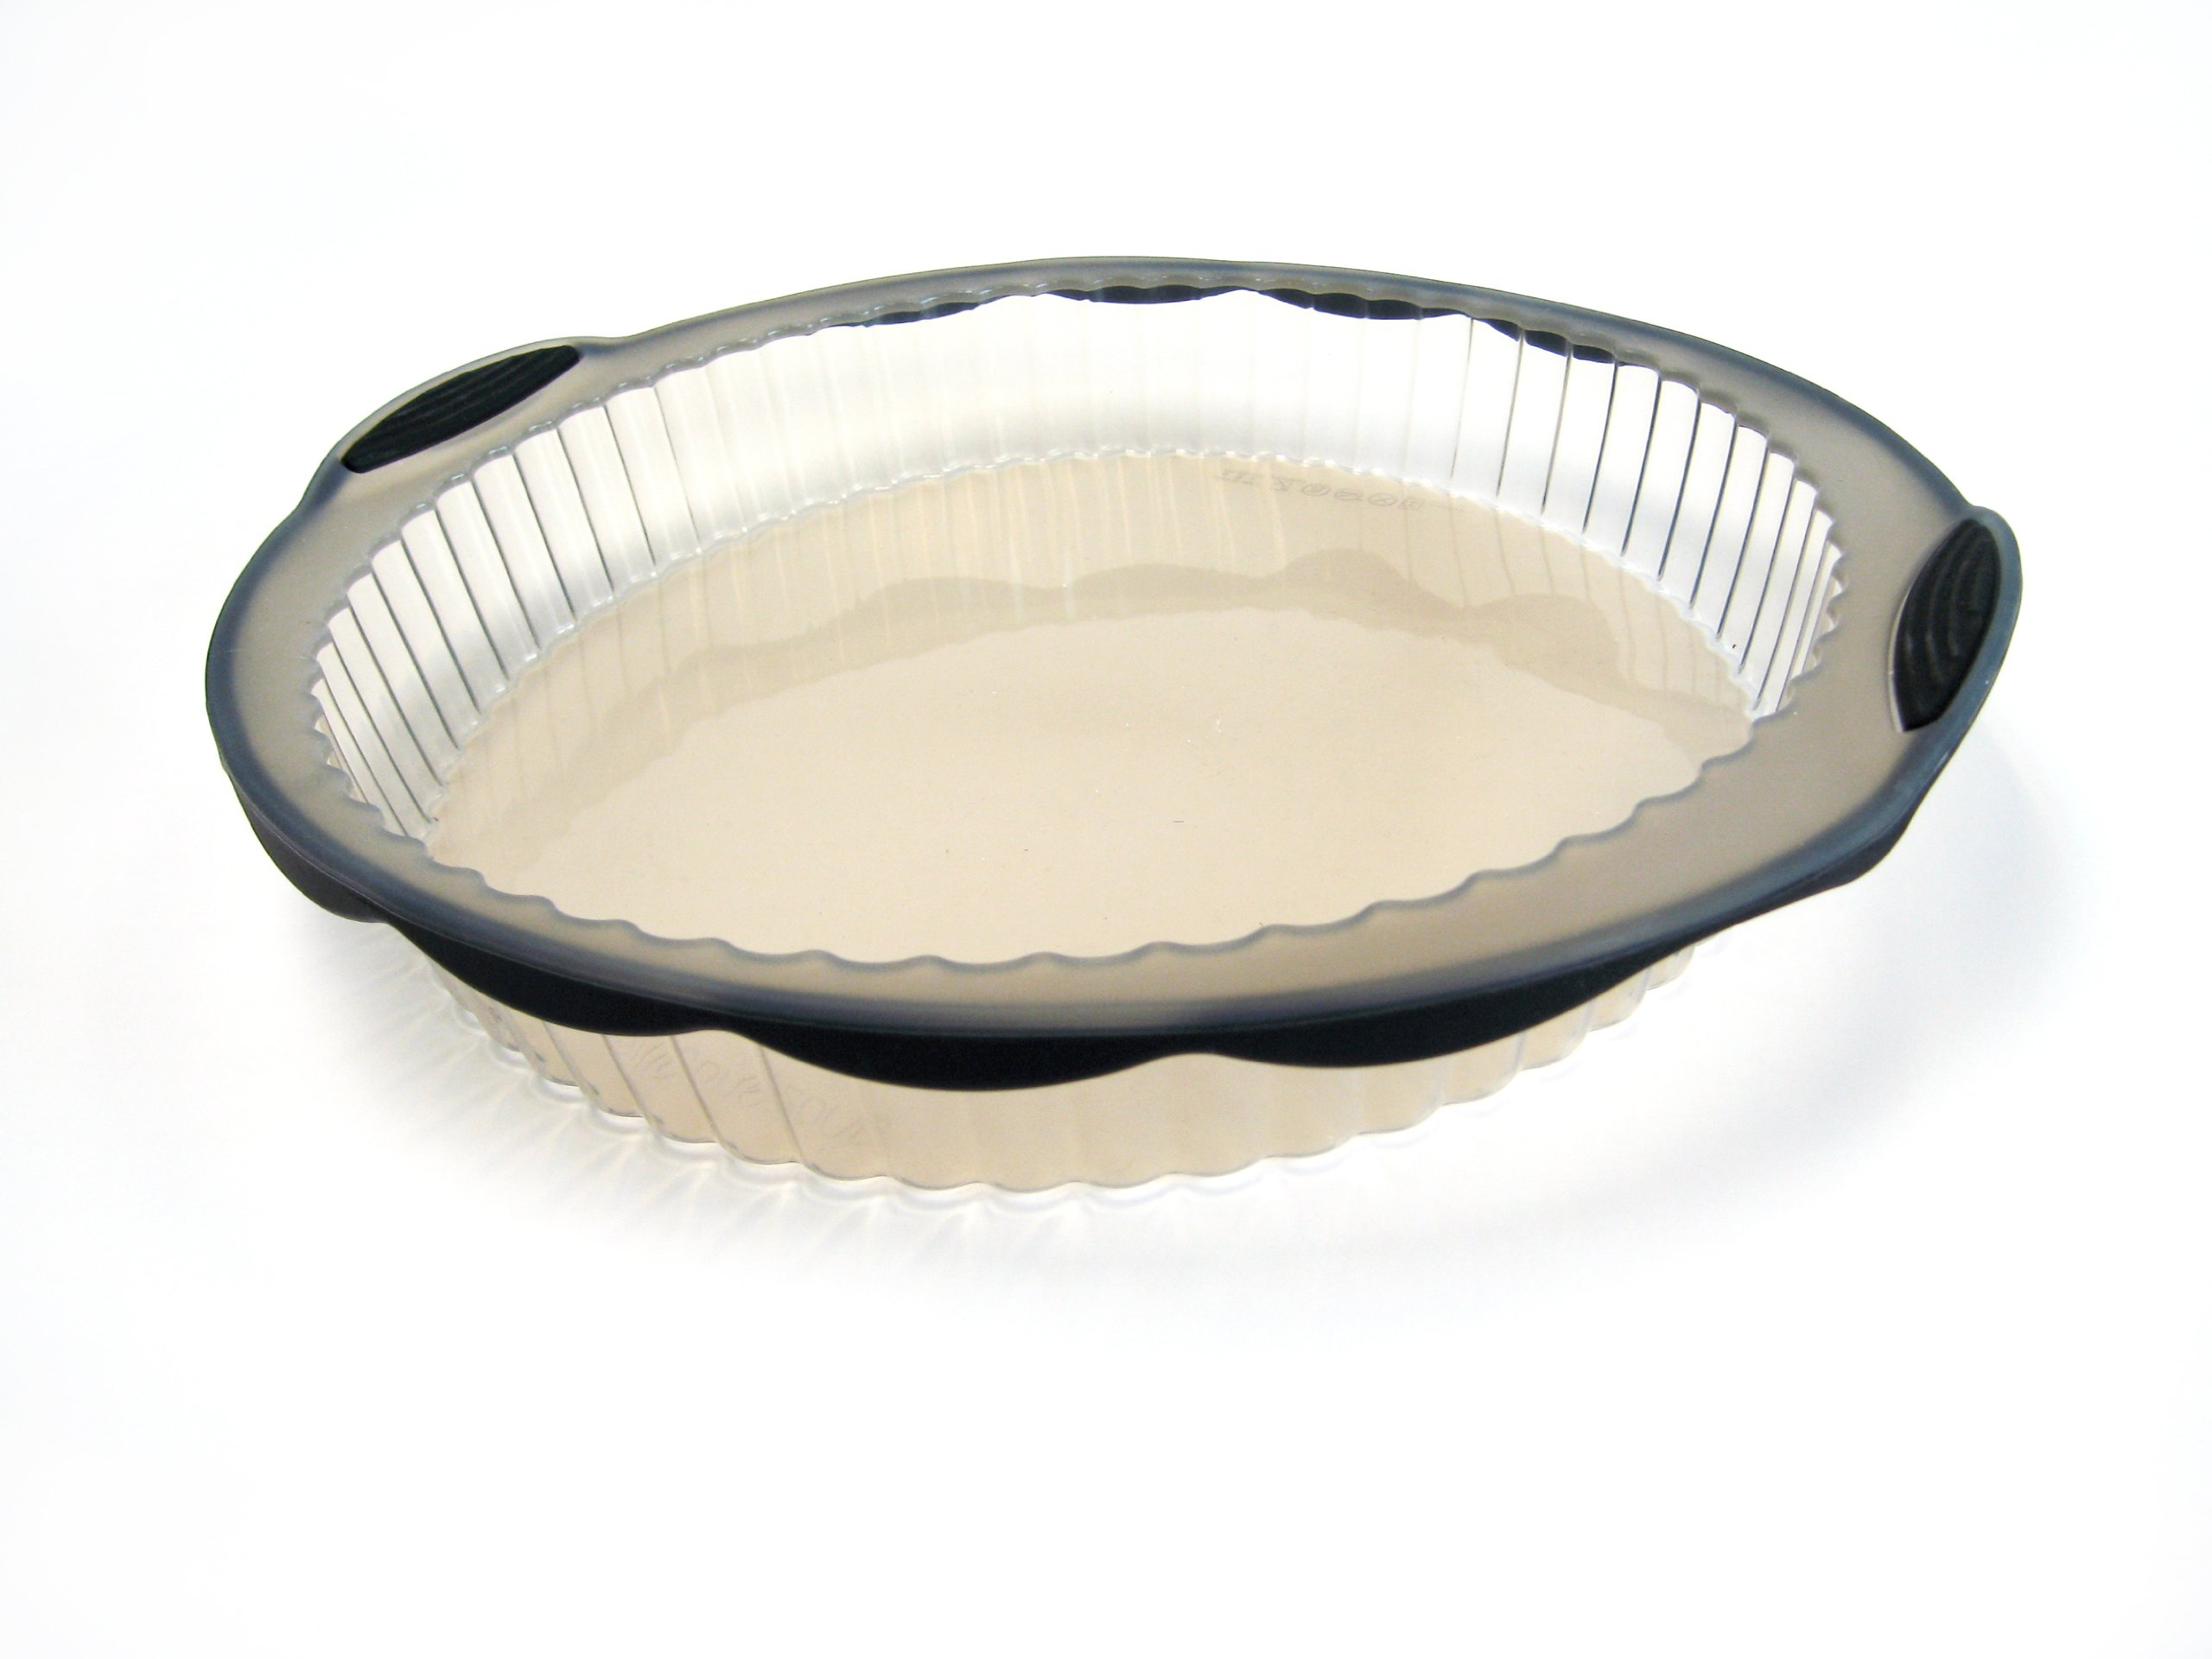 SiliconeZone Pure Collection 12'' Silicone Non-Stick Tart Pan, Freezer Safe, Oven Safe, Microwave Safe, Dishwasher Safe, BPA Free, Translucent Smoke & Black by Siliconezone